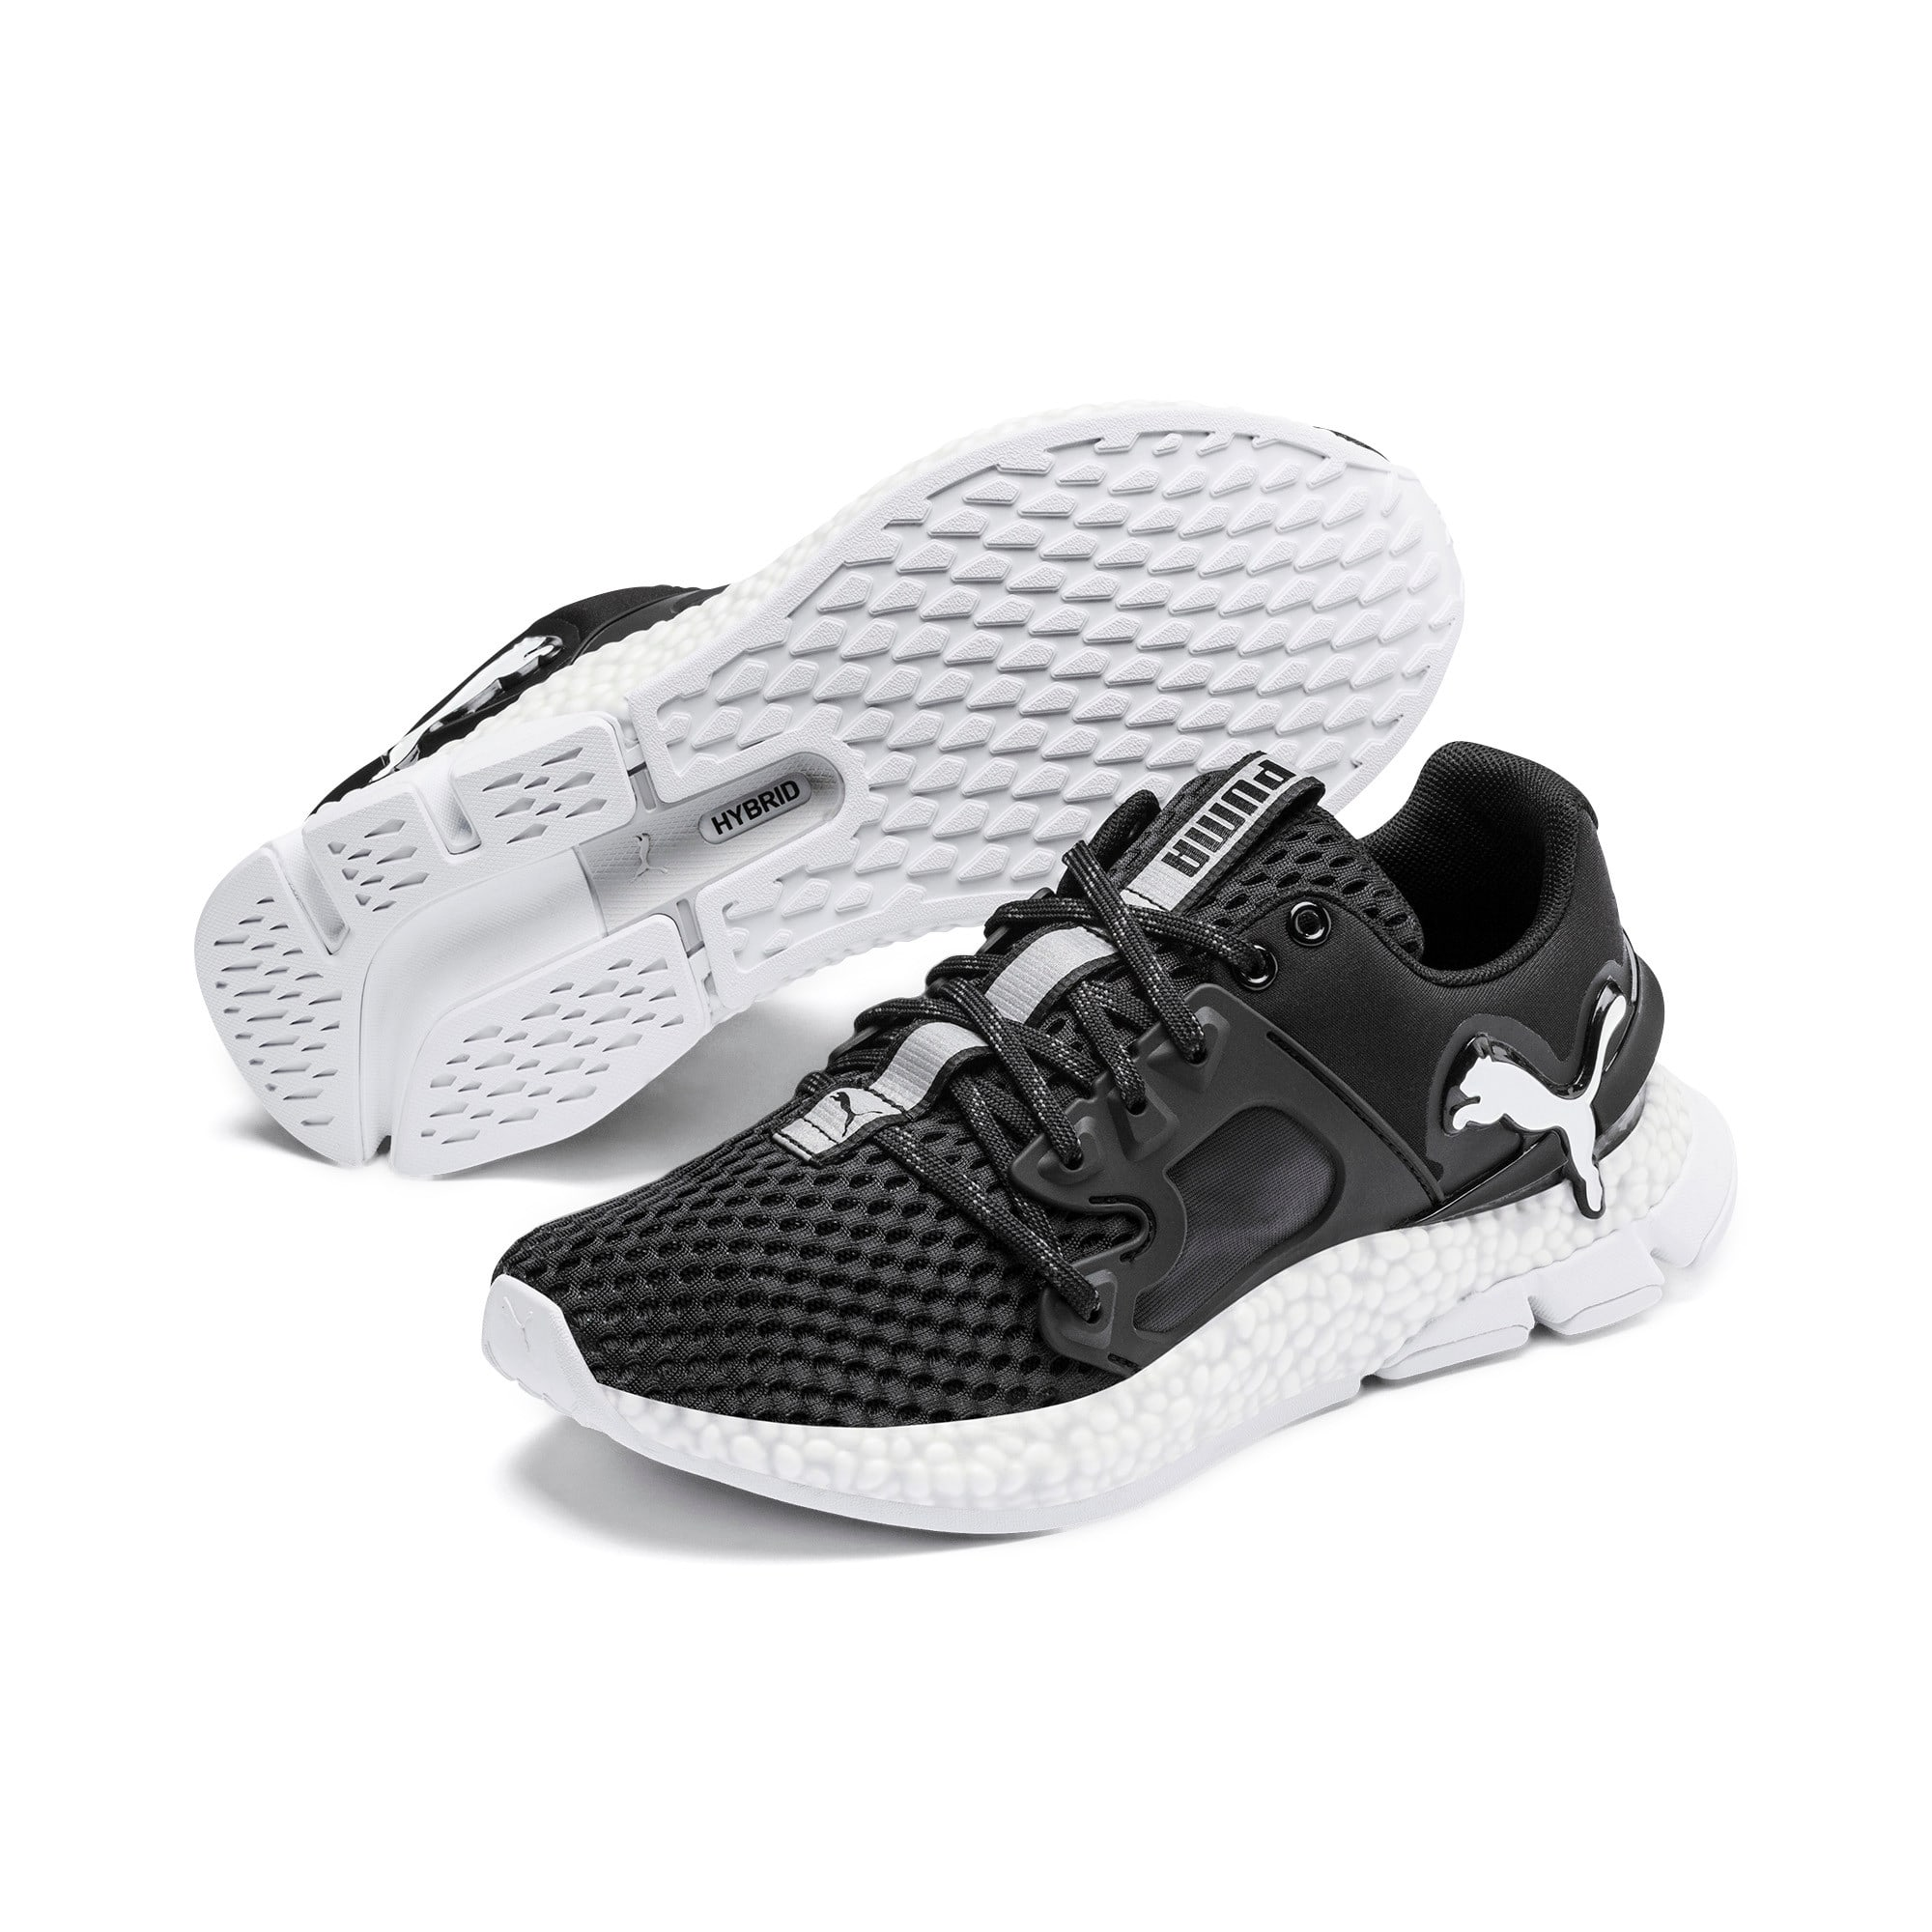 Thumbnail 3 of HYBRID Sky Women's Running Shoes, Puma Black-Puma White, medium